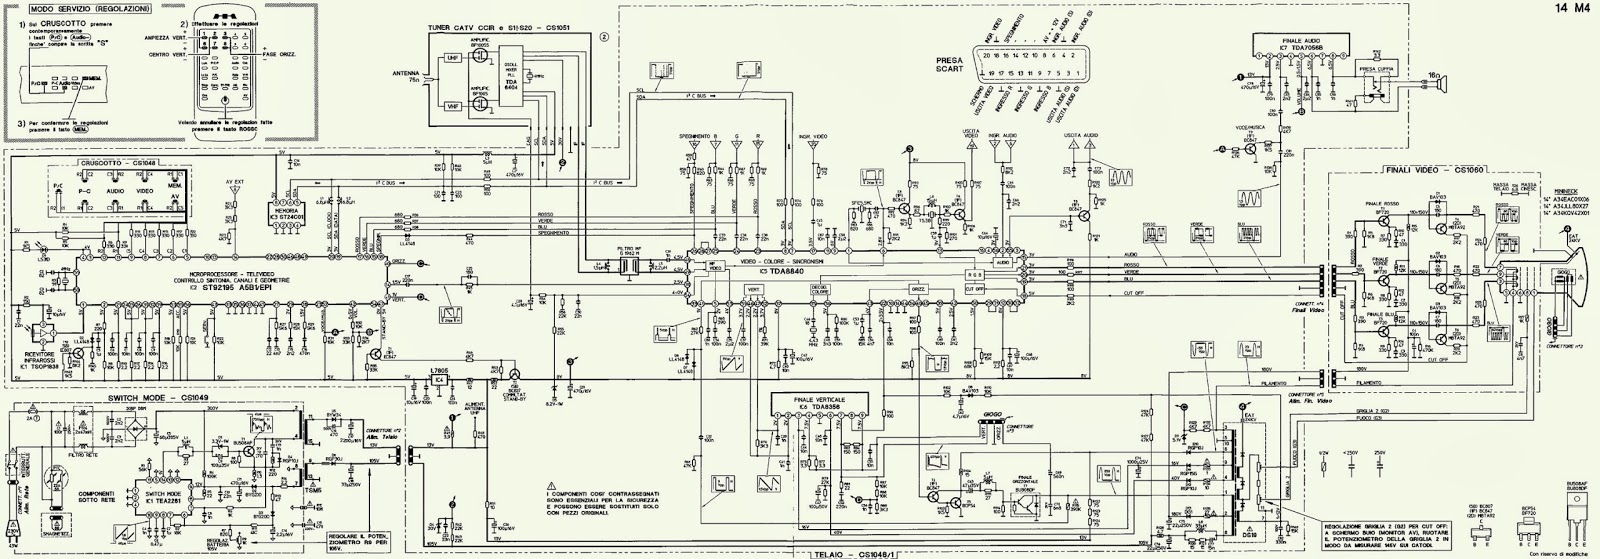 Colour Tv Circuit Diagram Smshowde 3682404 Toshiba Color 34hf84 Service Manual Mivar 14m4 Schematic